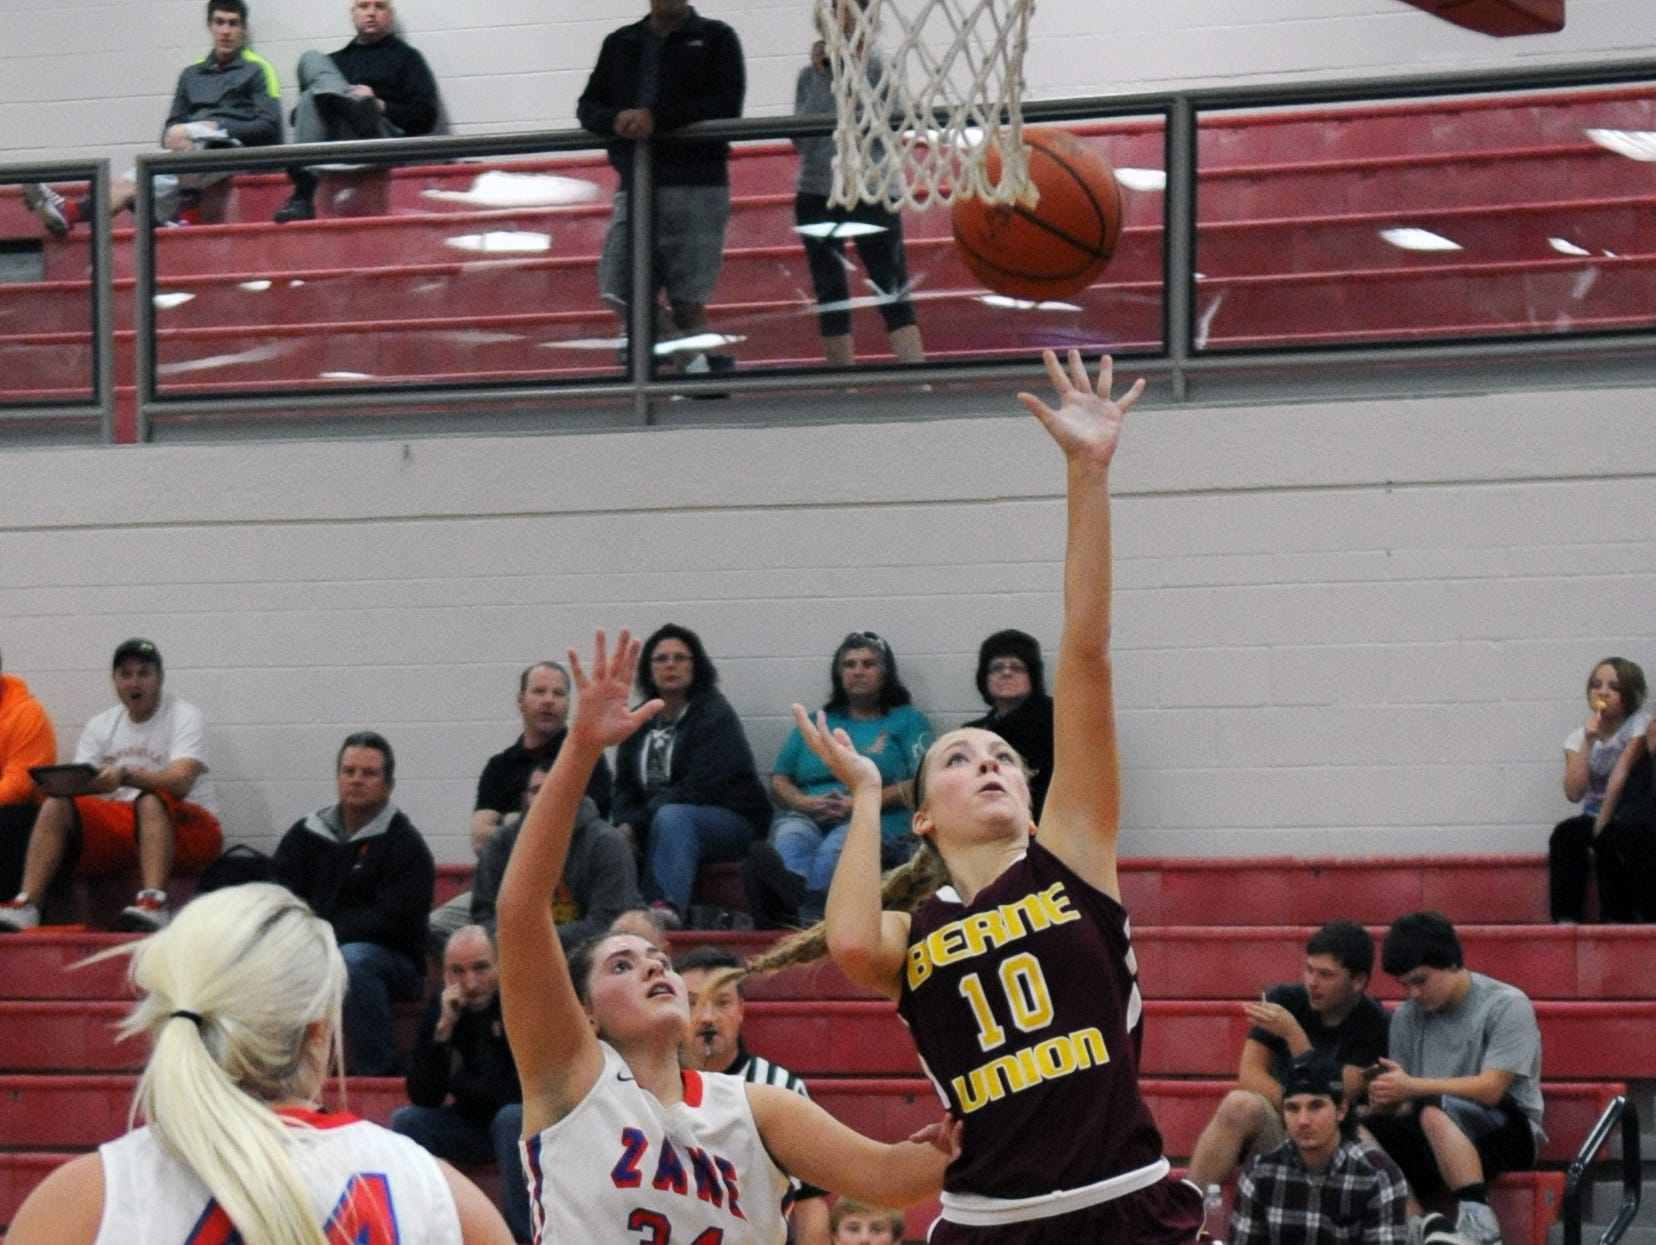 Berne Union's Madison Ross jumps up for a shot against Zane Trace Friday at Zane Trace High School.